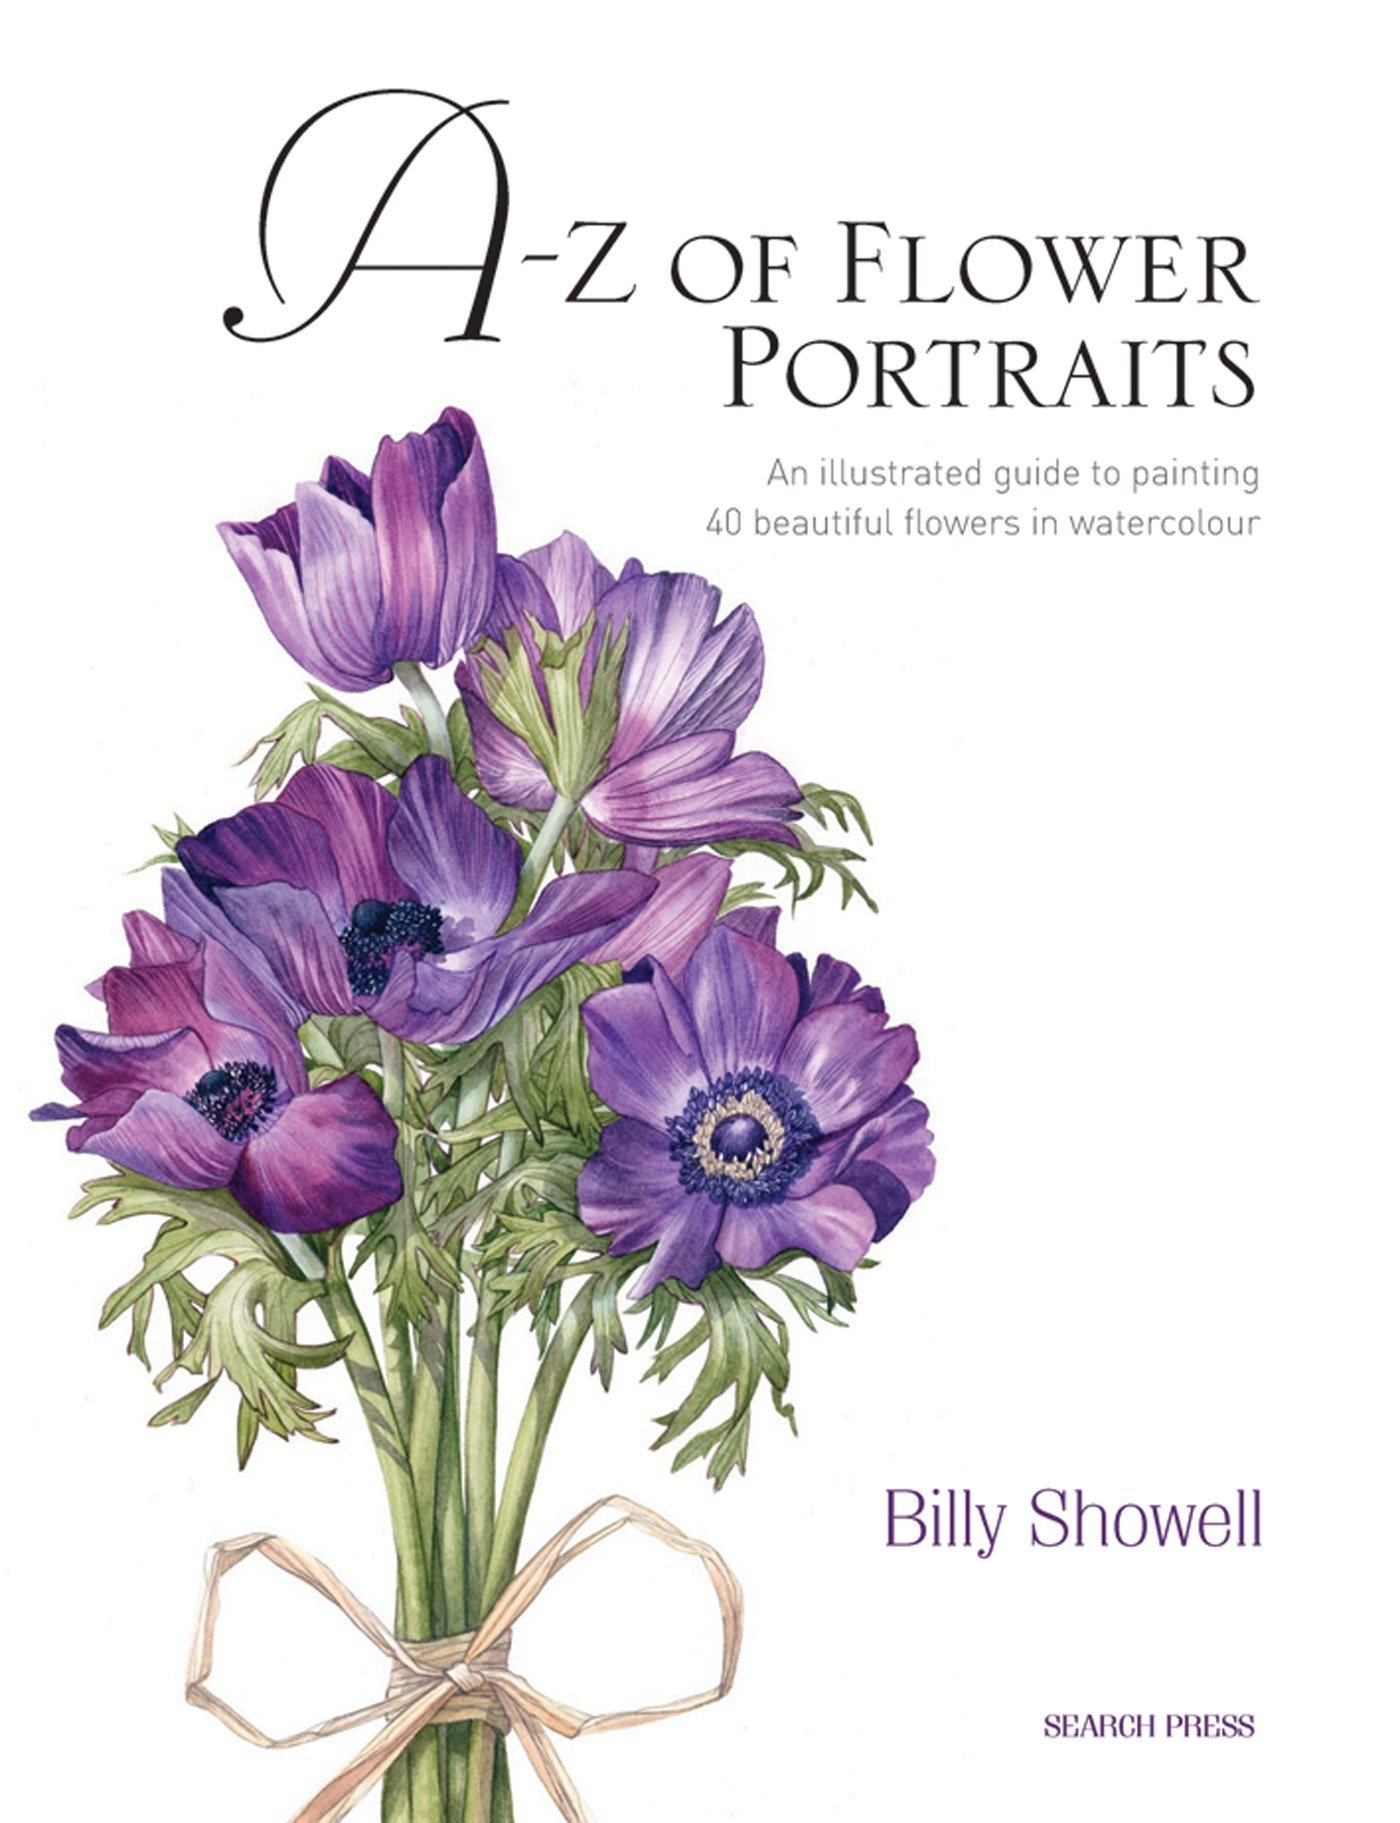 A z of flower portraits an illustrated guide to painting 40 a z of flower portraits an illustrated guide to painting 40 beautiful flowers in watercolour billy showell 0884684835291 amazon books izmirmasajfo